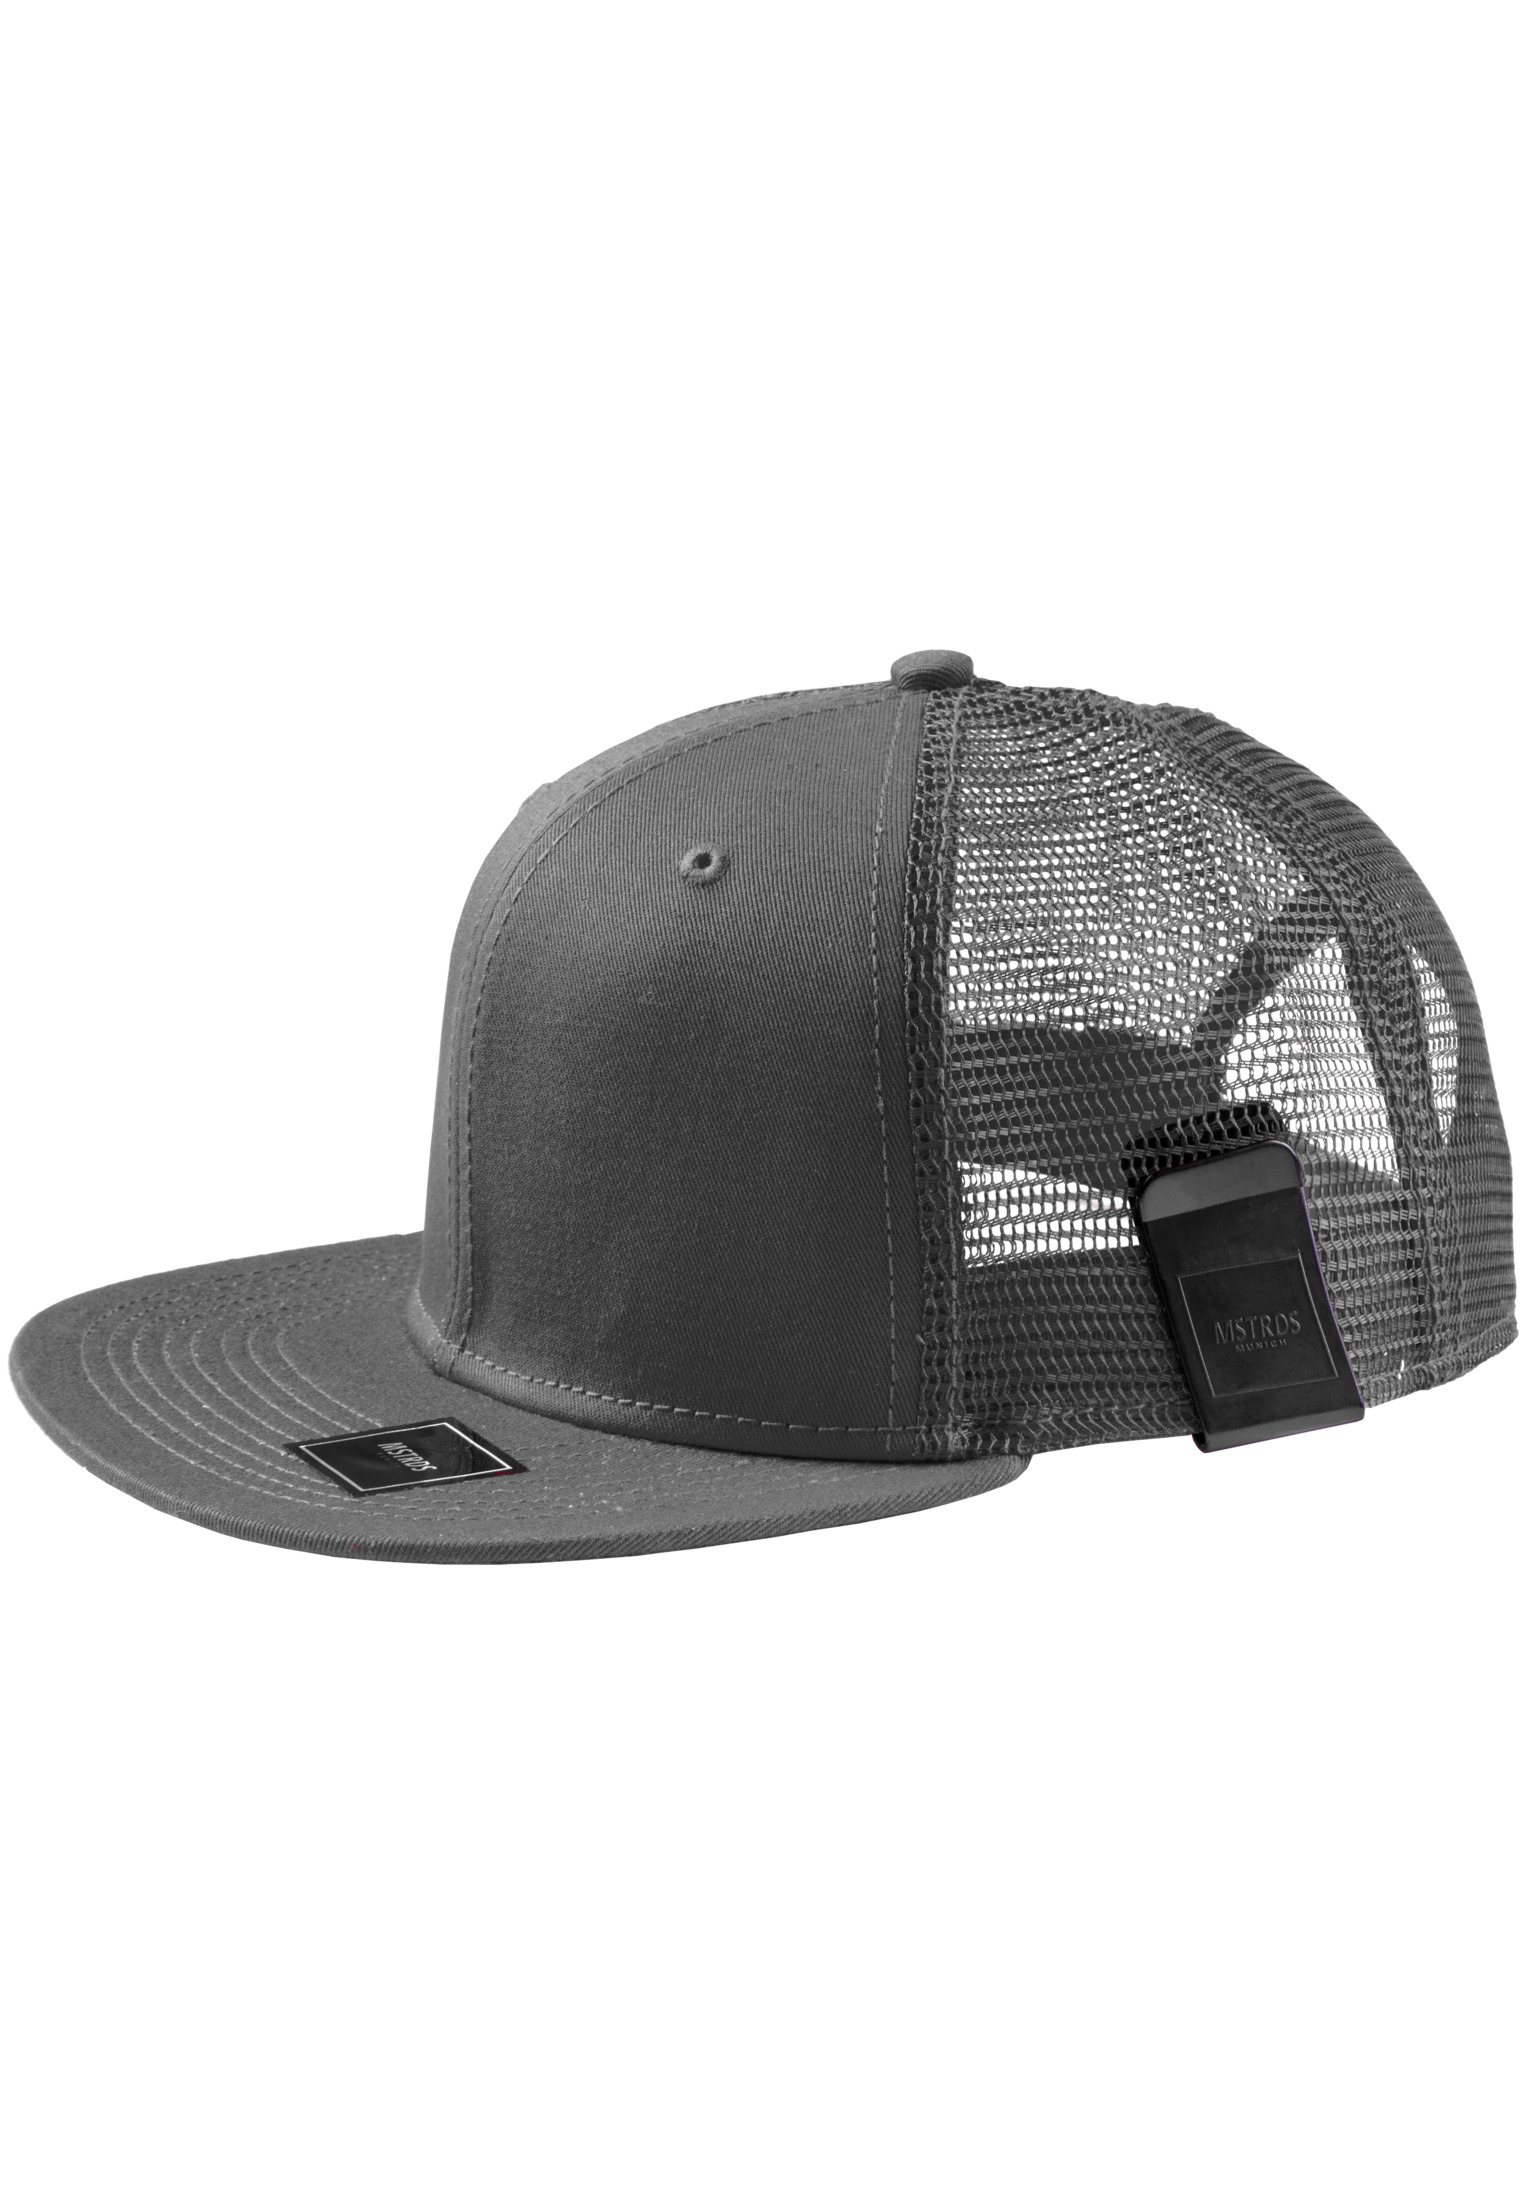 Master Dis MoneyClip Trucker Snapback Cap charcoal - One Size